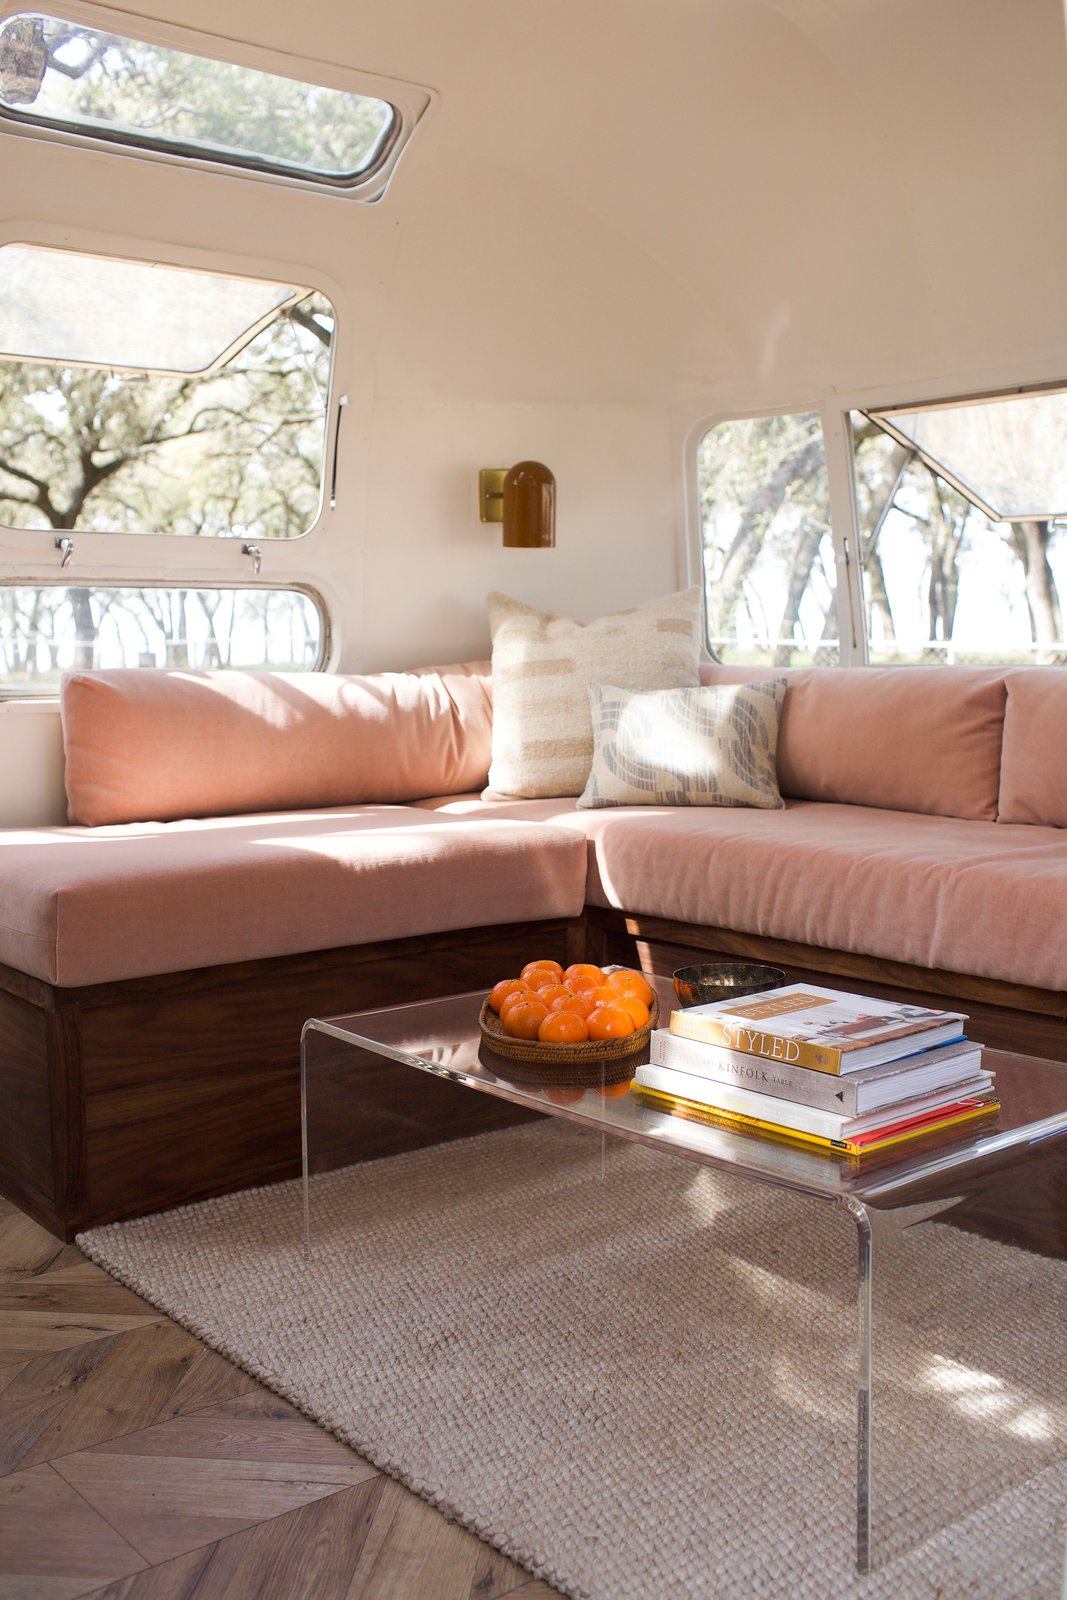 photo 2 of 7 in this chic camper will